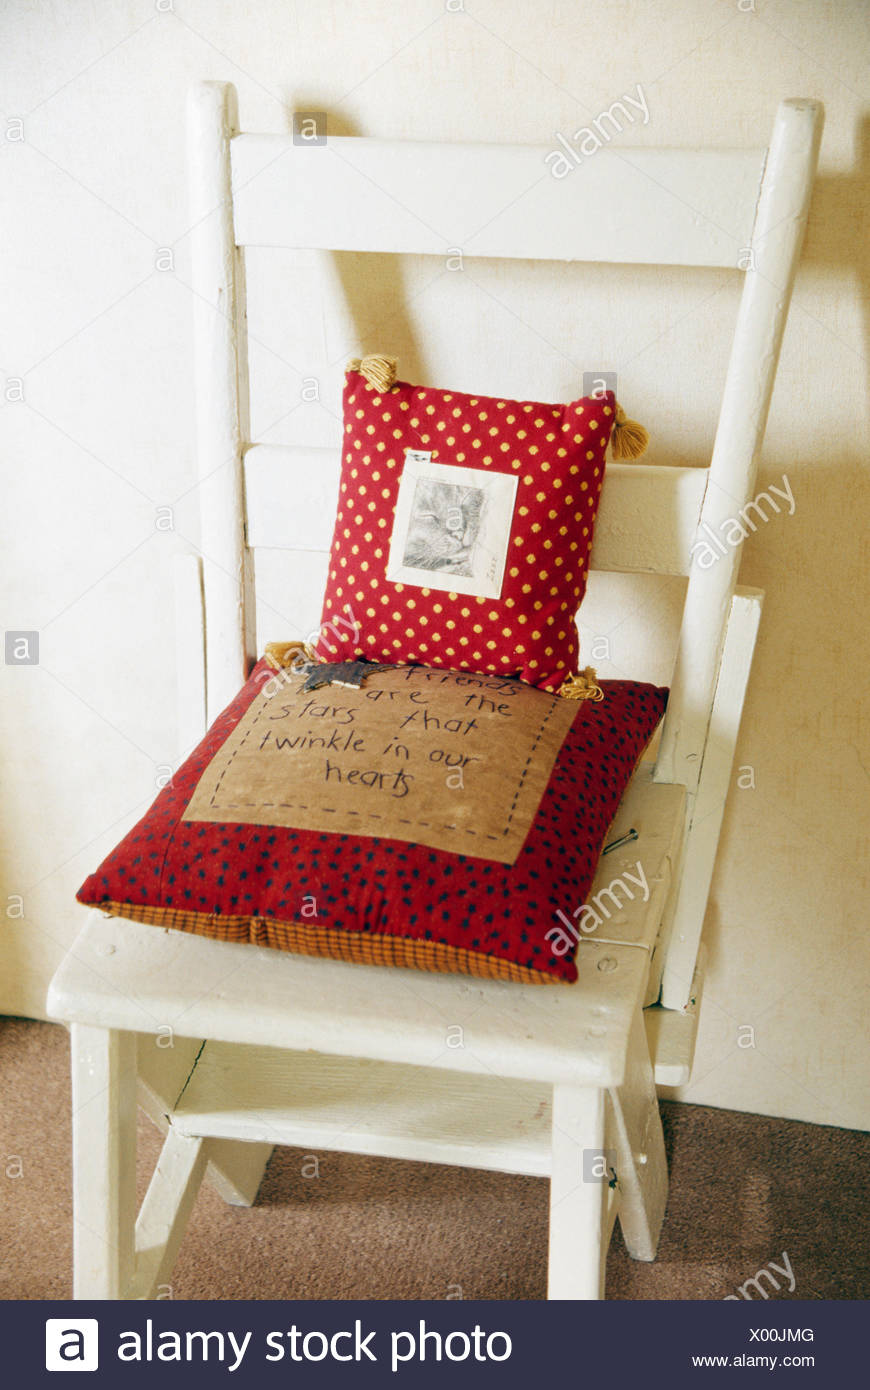 Close Up Of Red Appliqued Cushions On Cream Painted Folding Chair